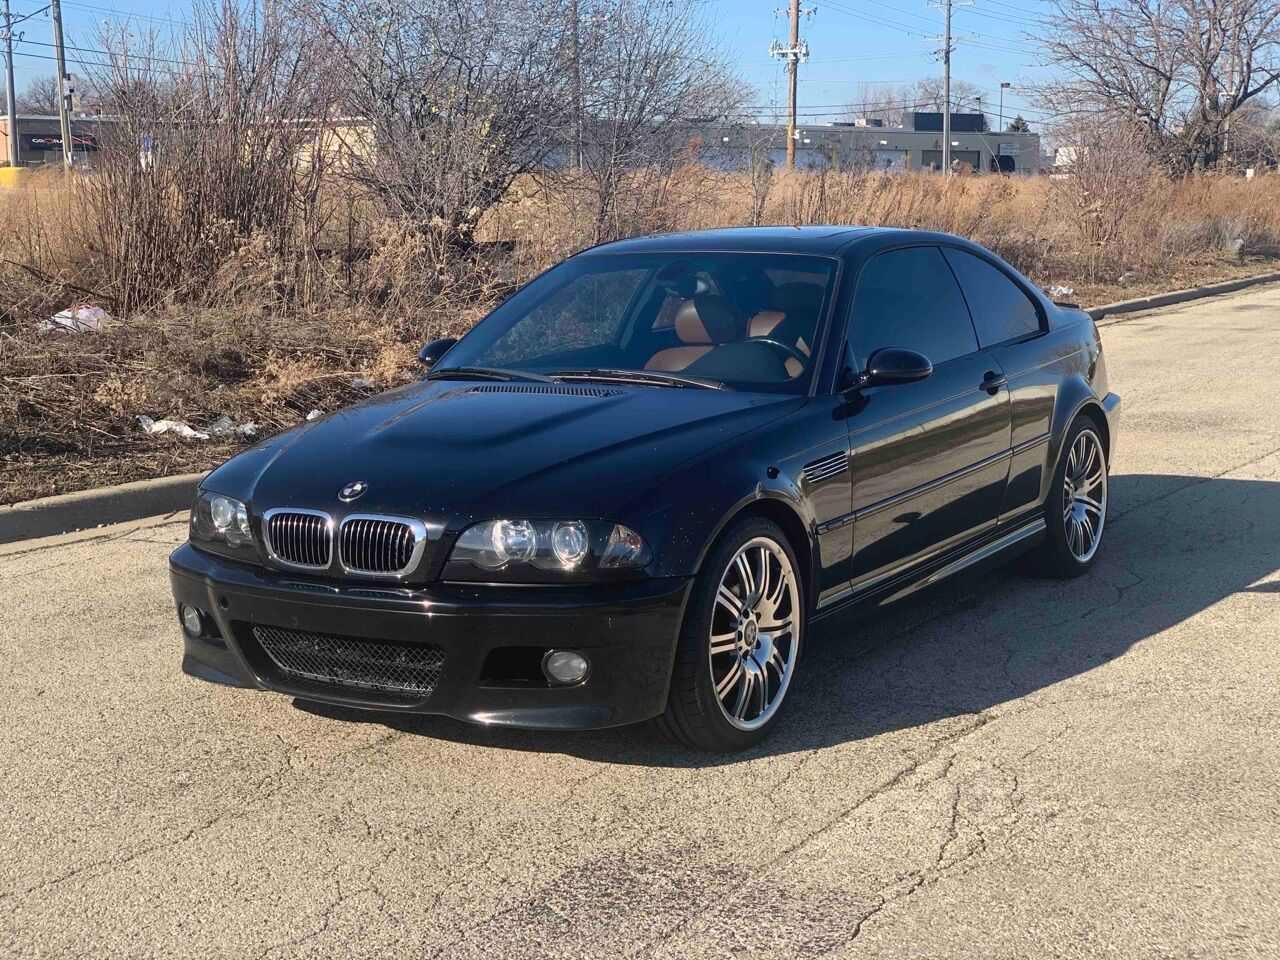 Used 2002 Bmw M3 For Sale Carsforsale Com